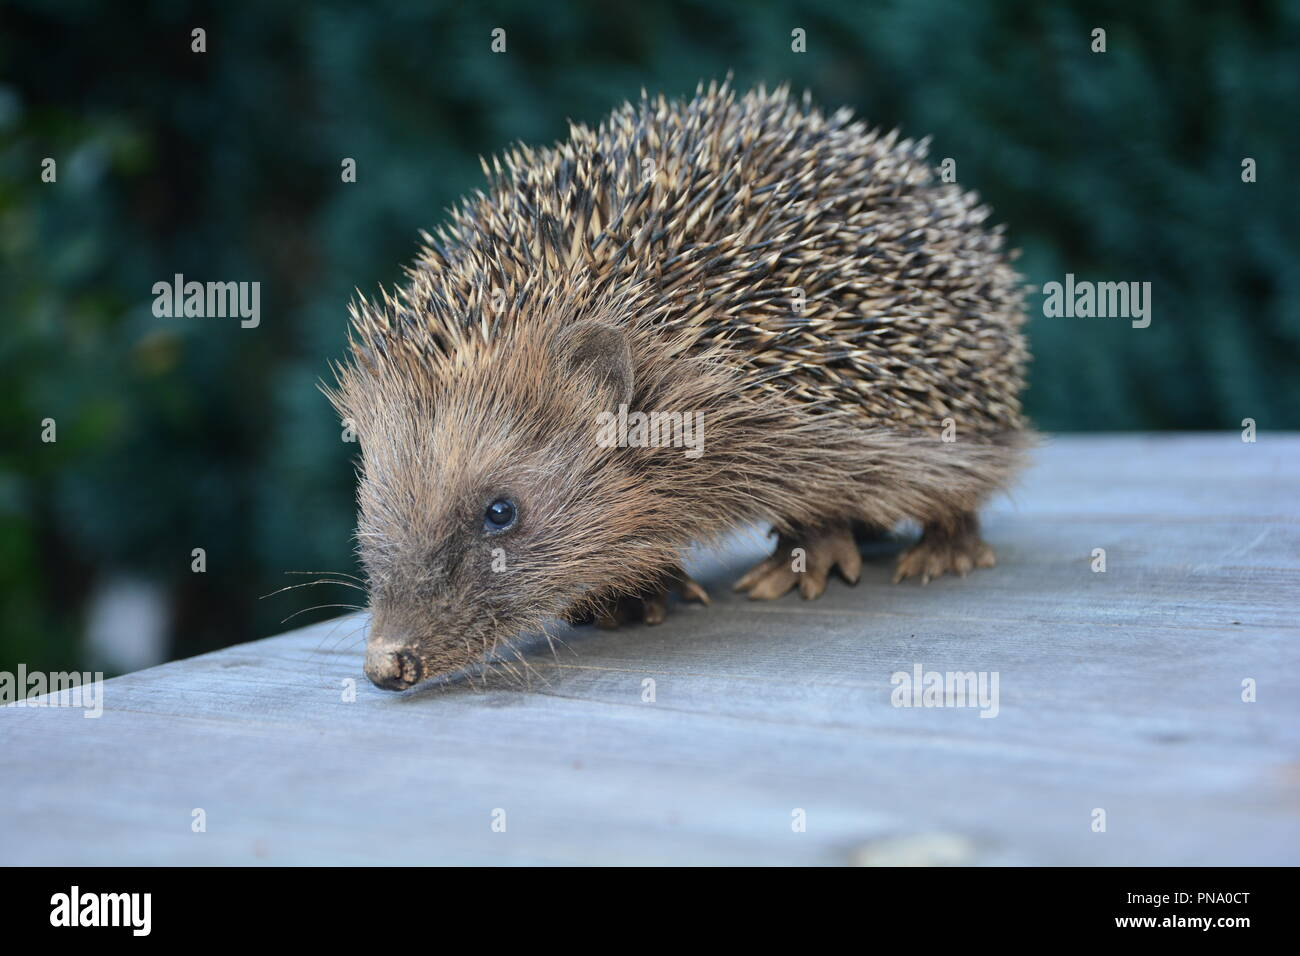 Hedgehog stands on wood in front of green nature - Stock Image